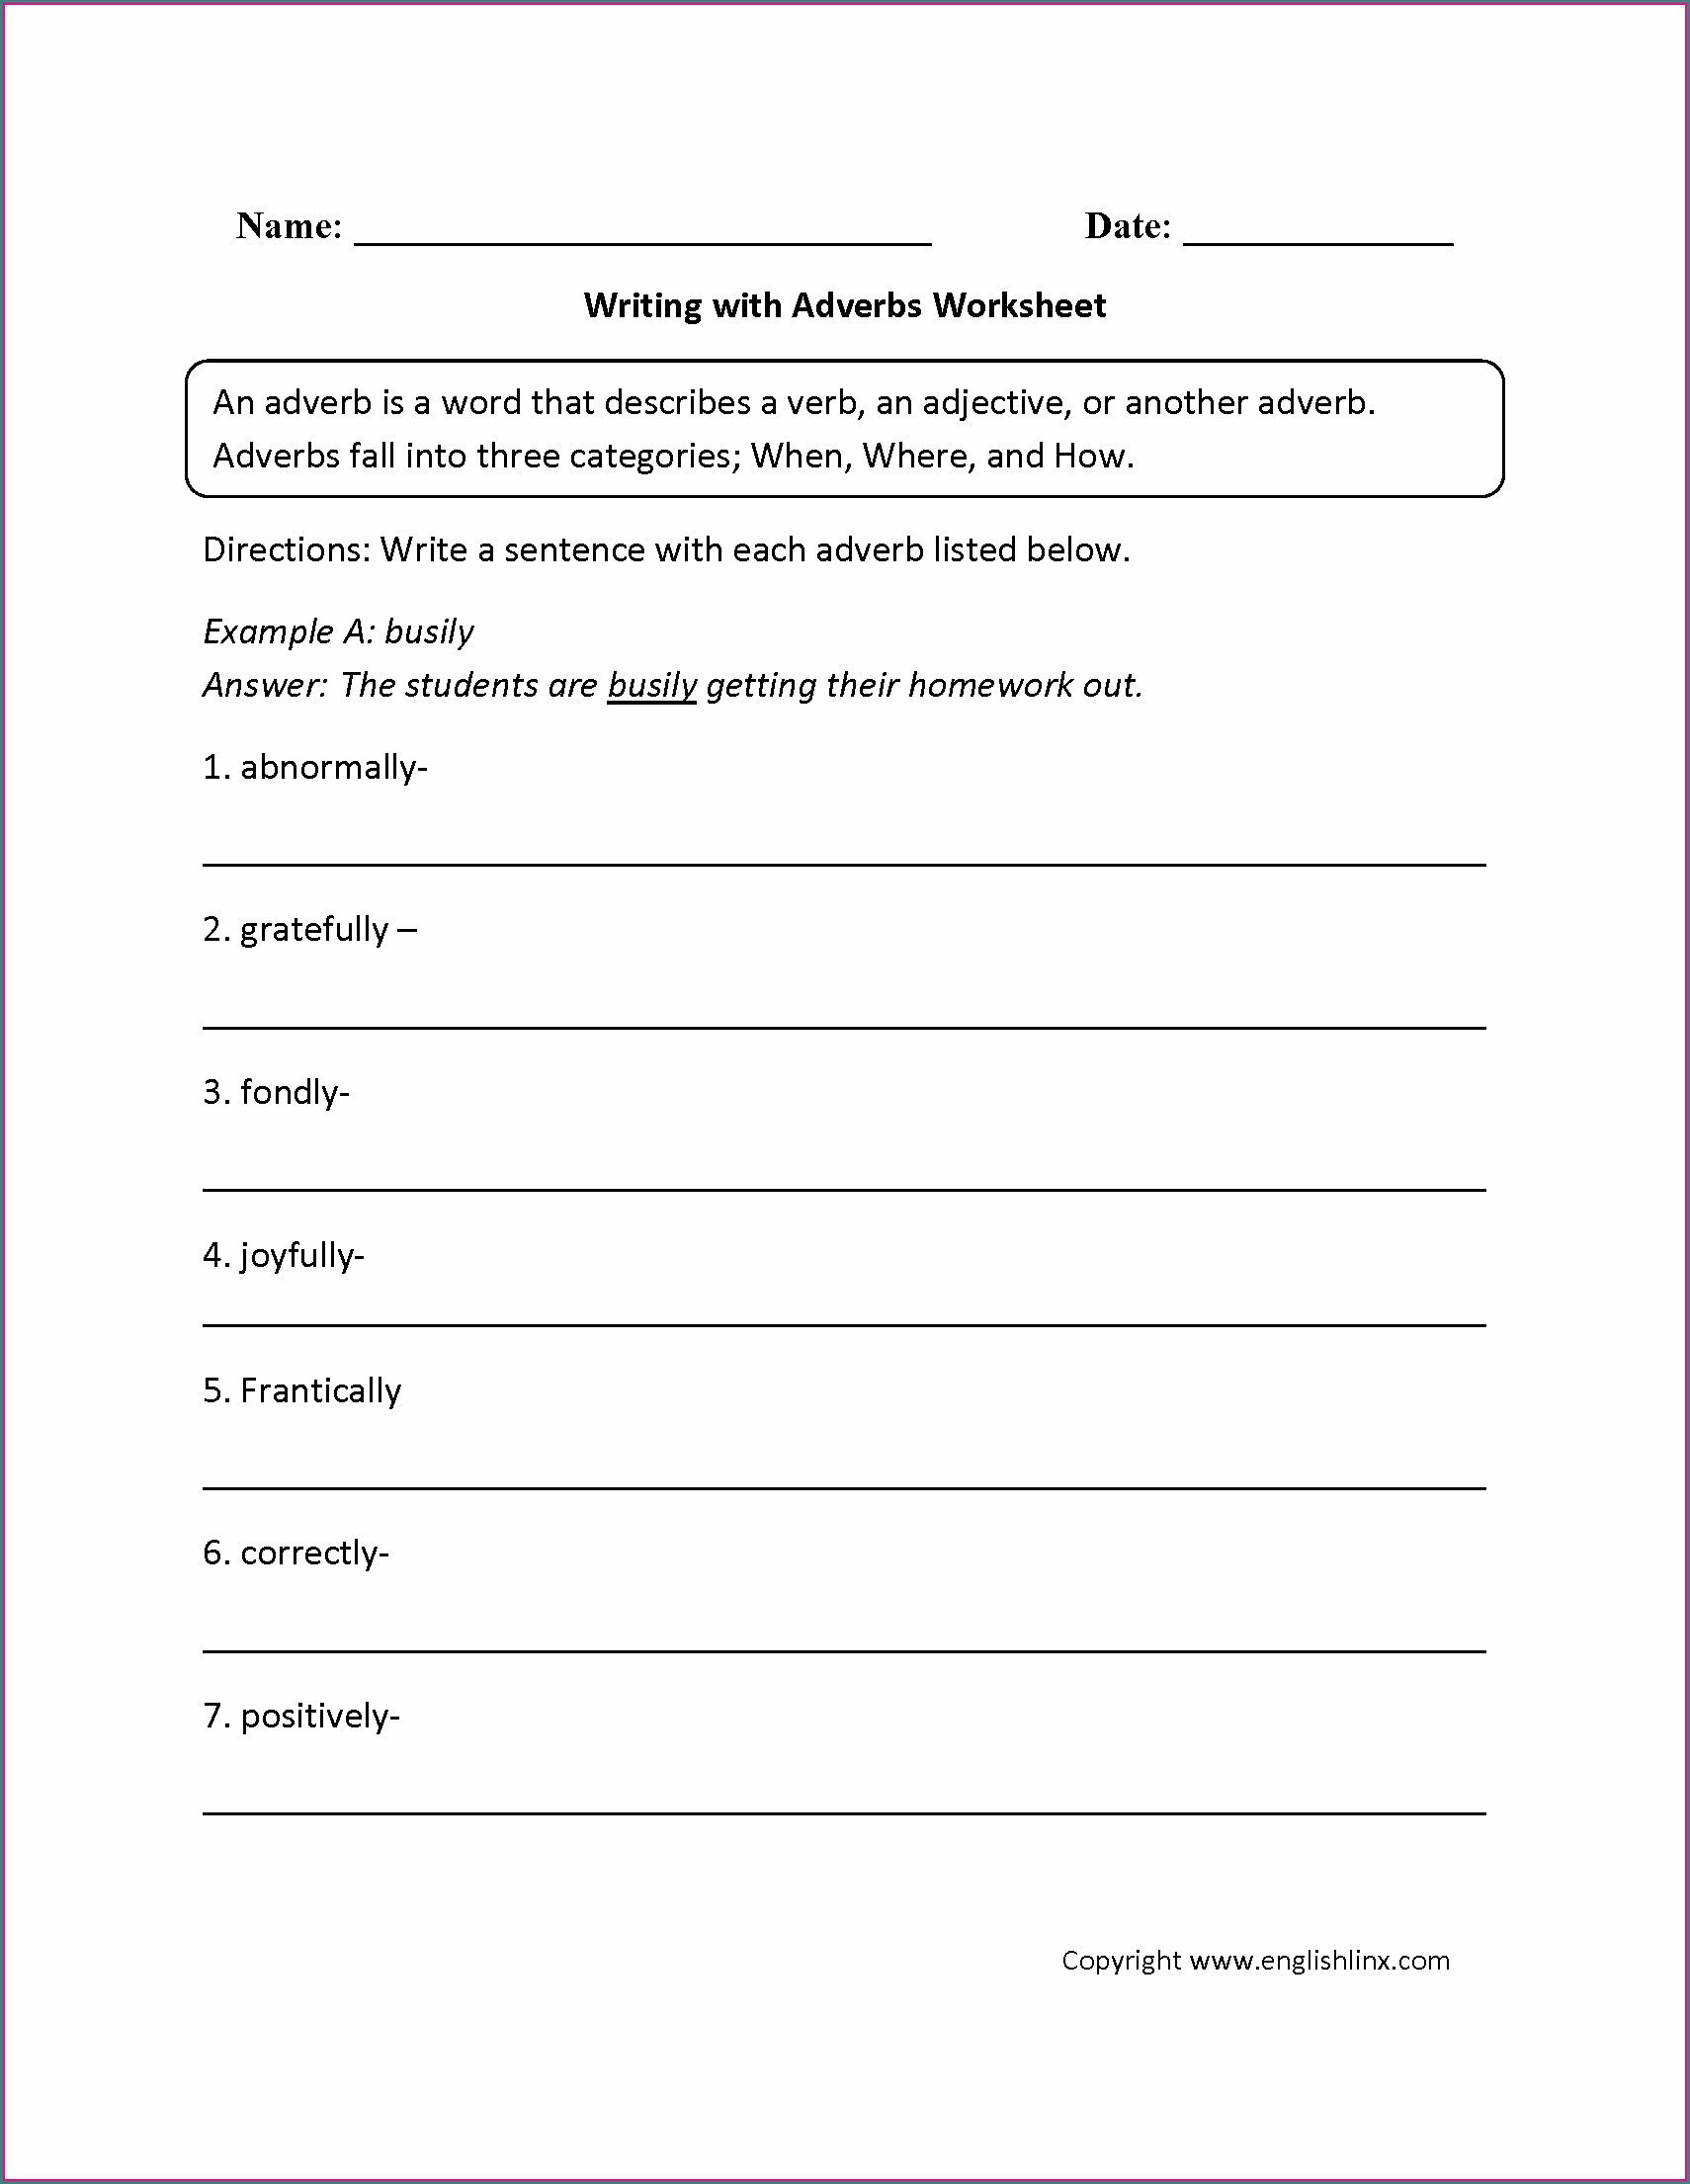 Adverbs Worksheet For Grade 5 Pdf